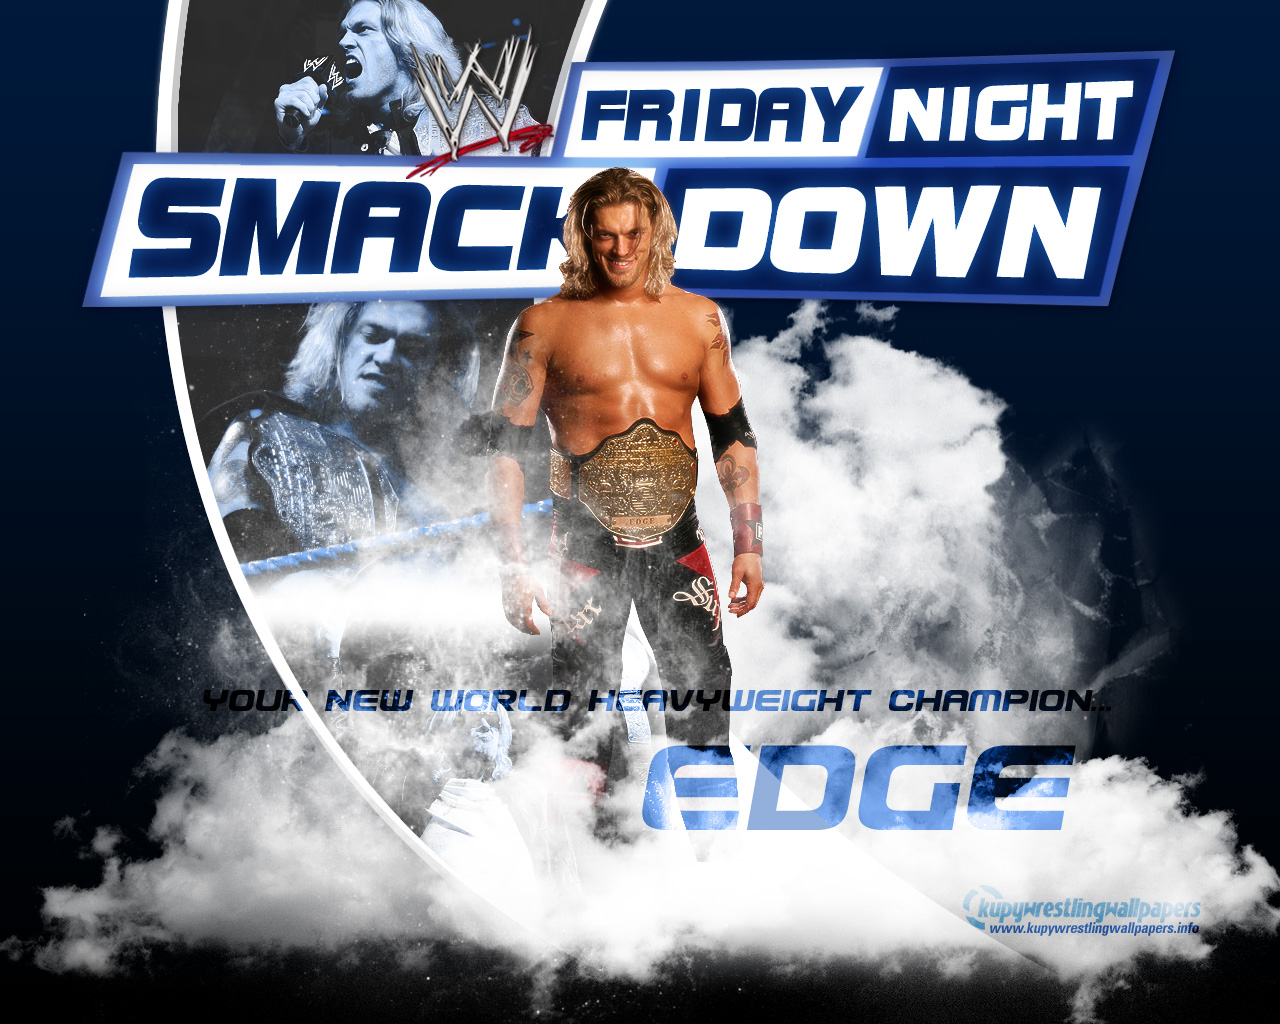 Friday Night Smackdown Aug 5 2011